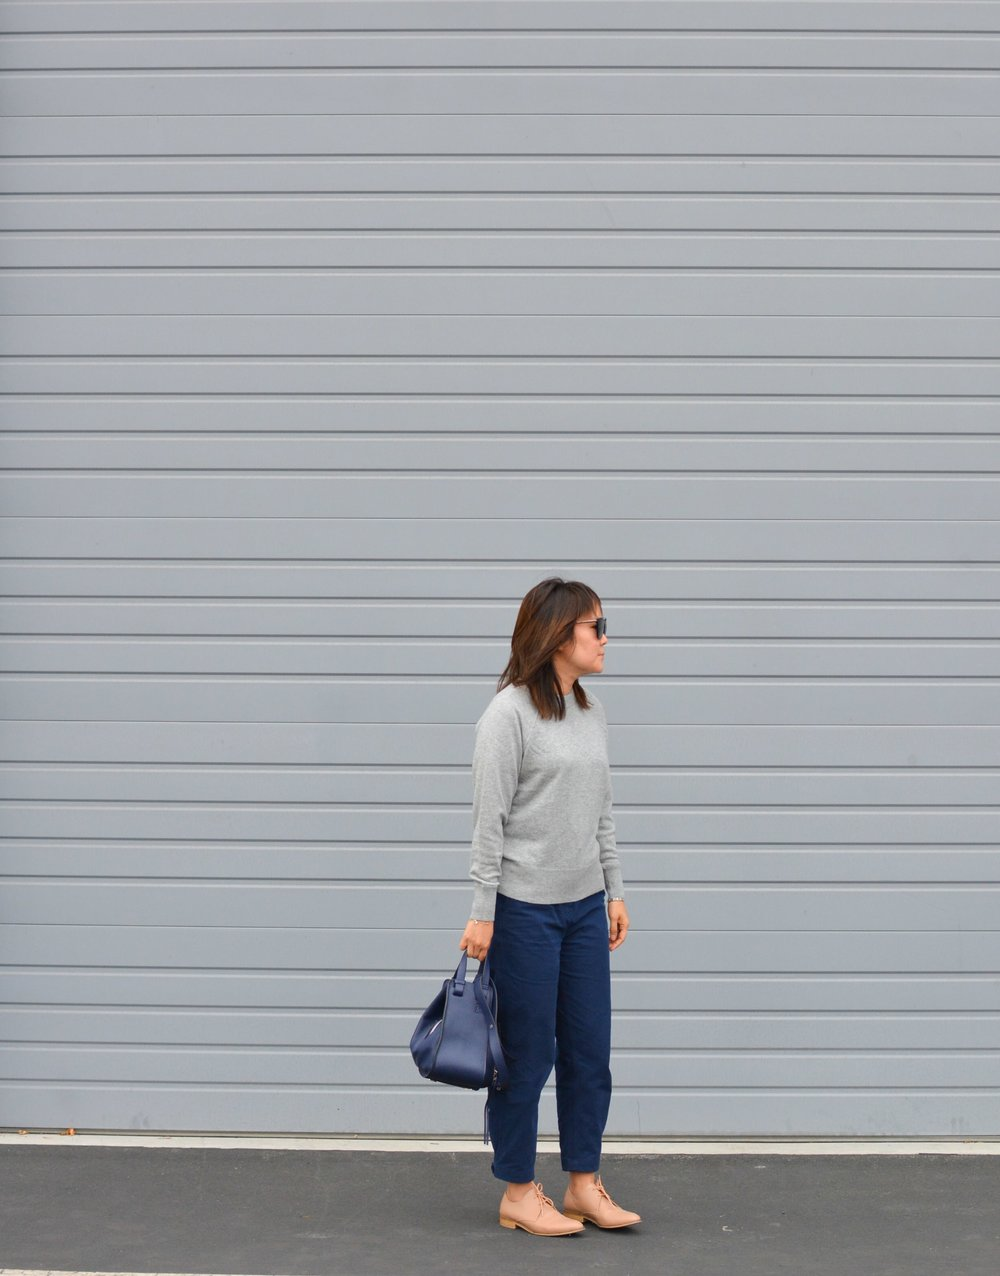 Everlane Review The Cashmere Sweatshirt (1 of 3)-min.jpg